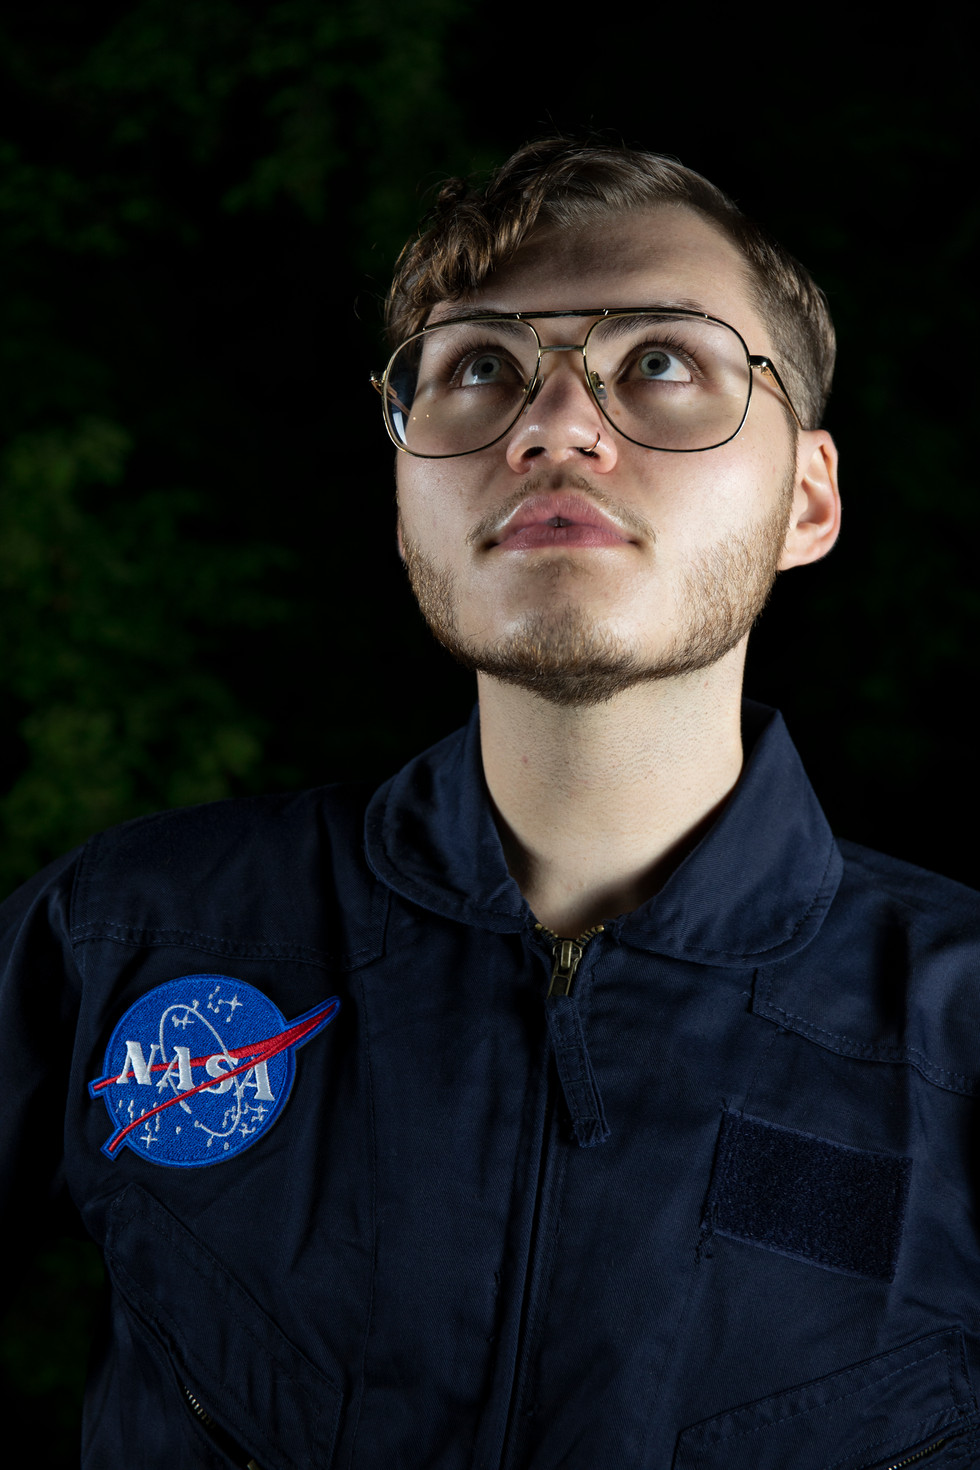 Becoming an Astronaut, 2020